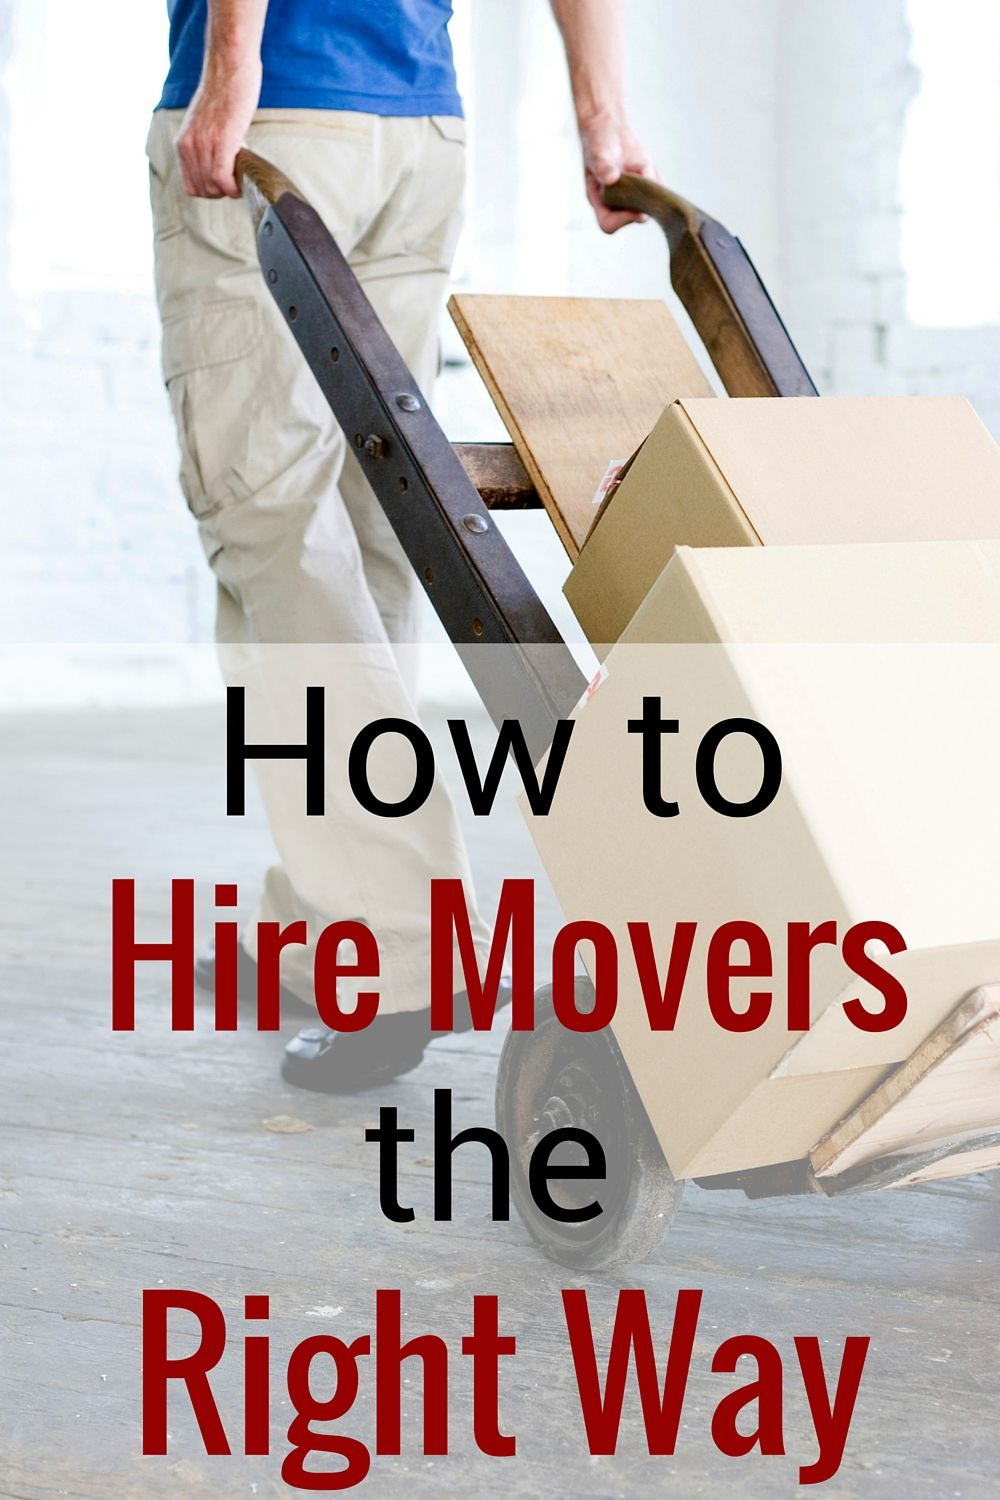 Moving Company Quotes Awesome I Got Screwedmovers How To Hire Movers The Right Way  Red Flag